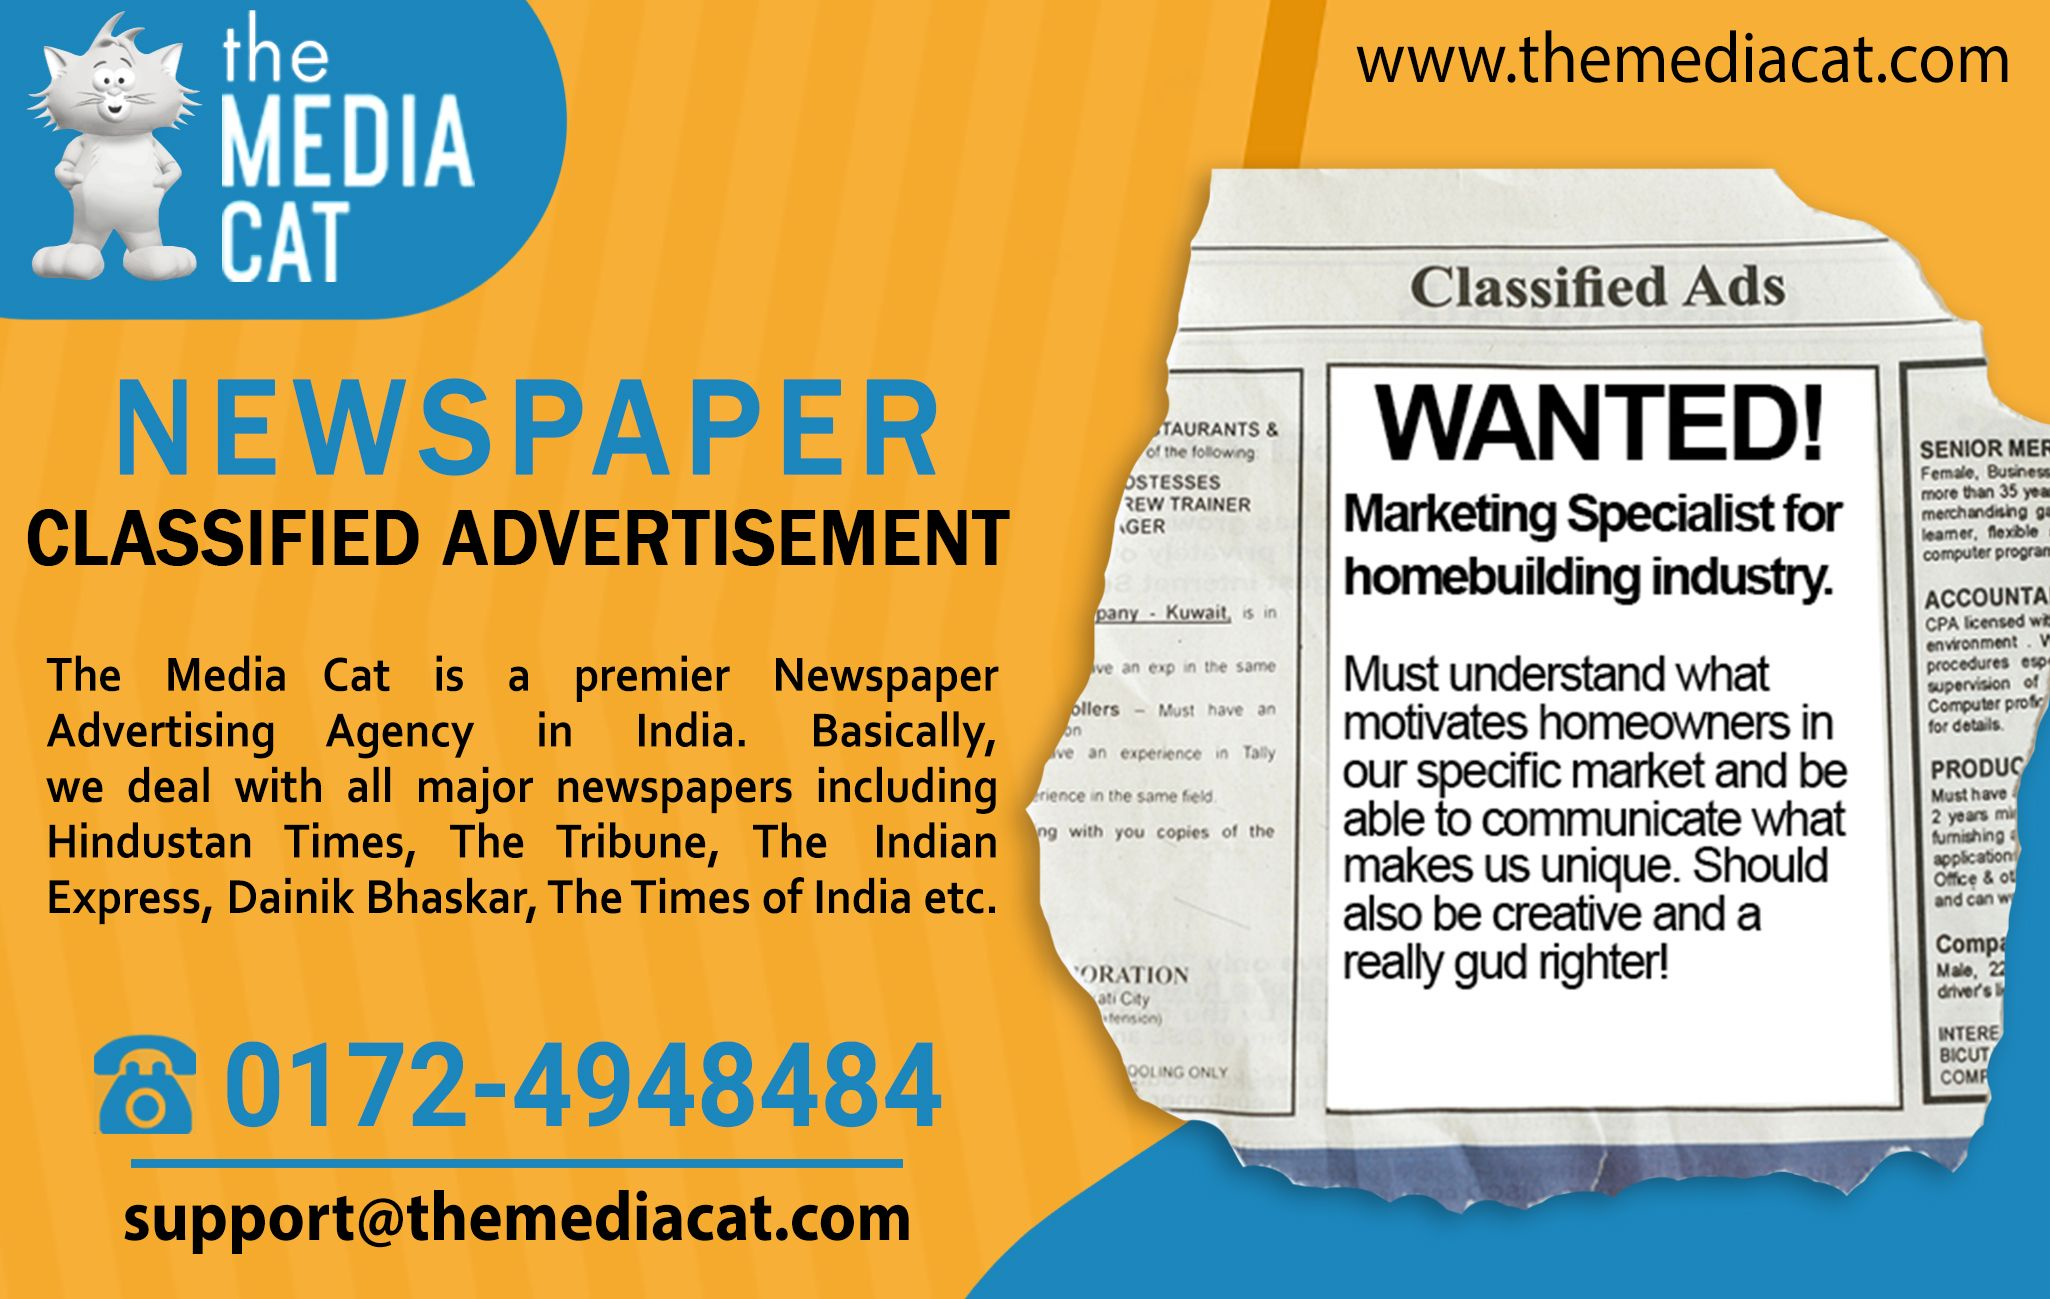 Instantly Book Classified Ads in all Indian newspapers